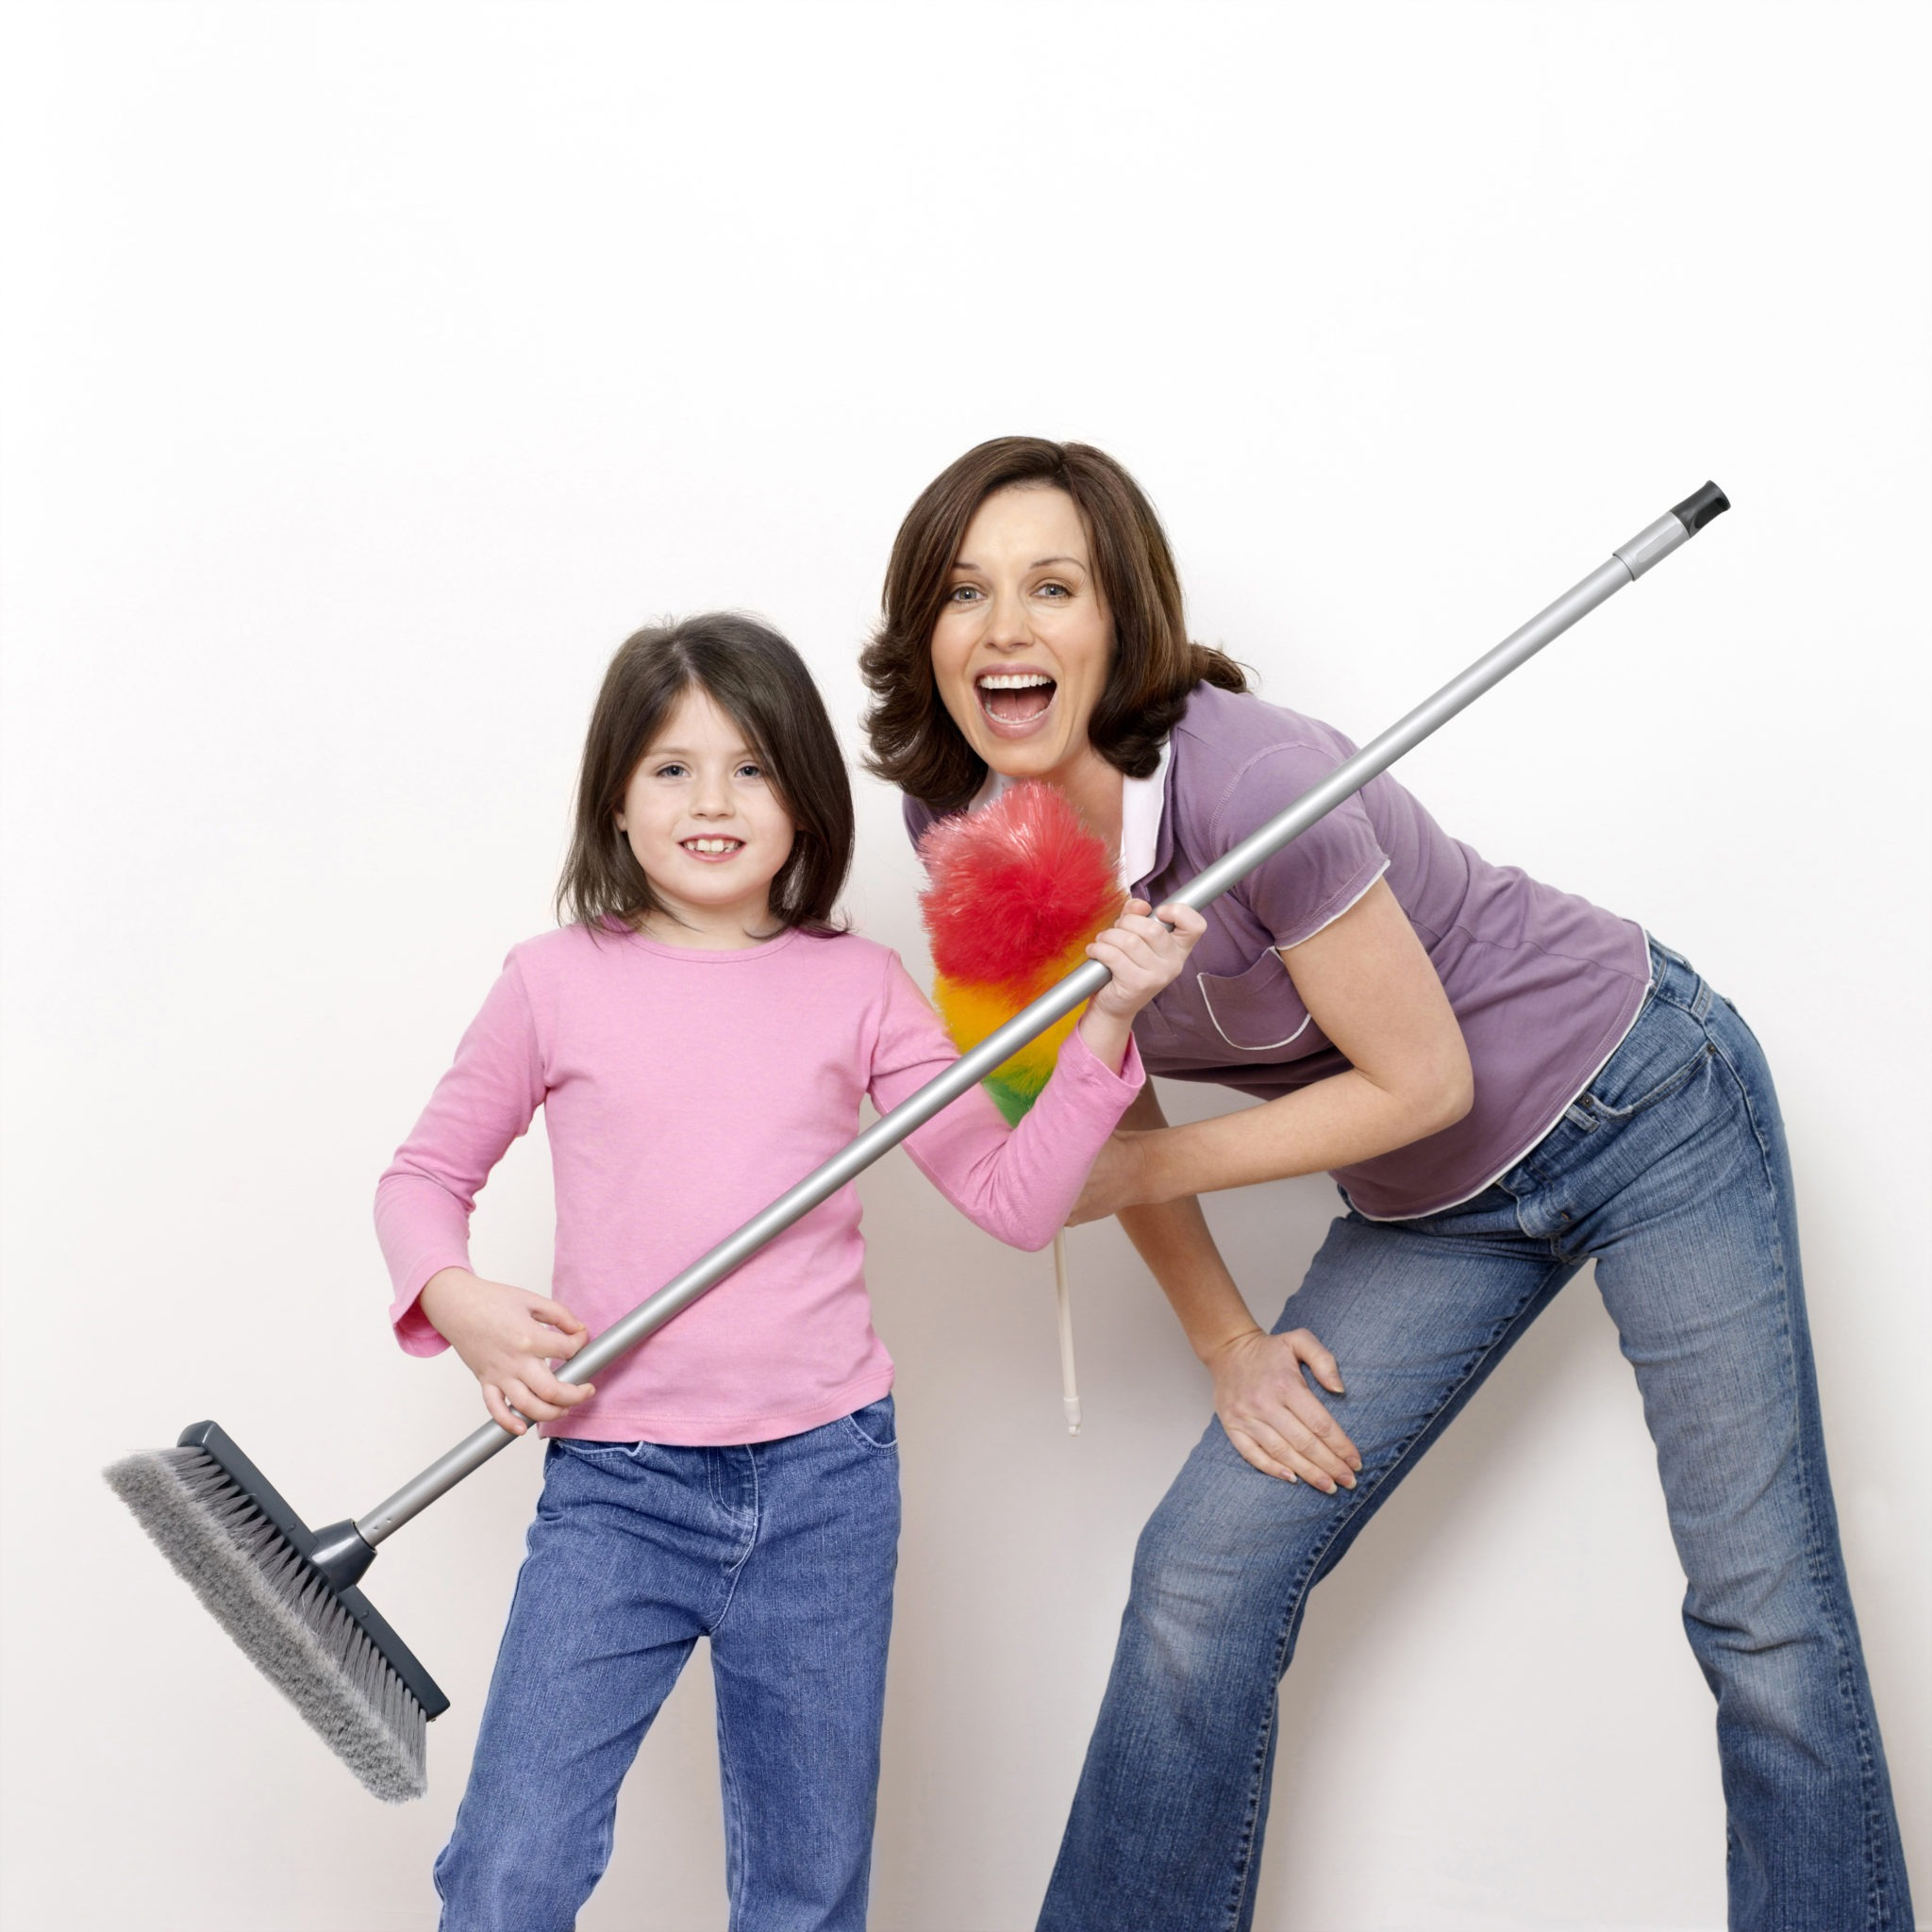 Learning to Succeed - A Mother's Gift to her Children